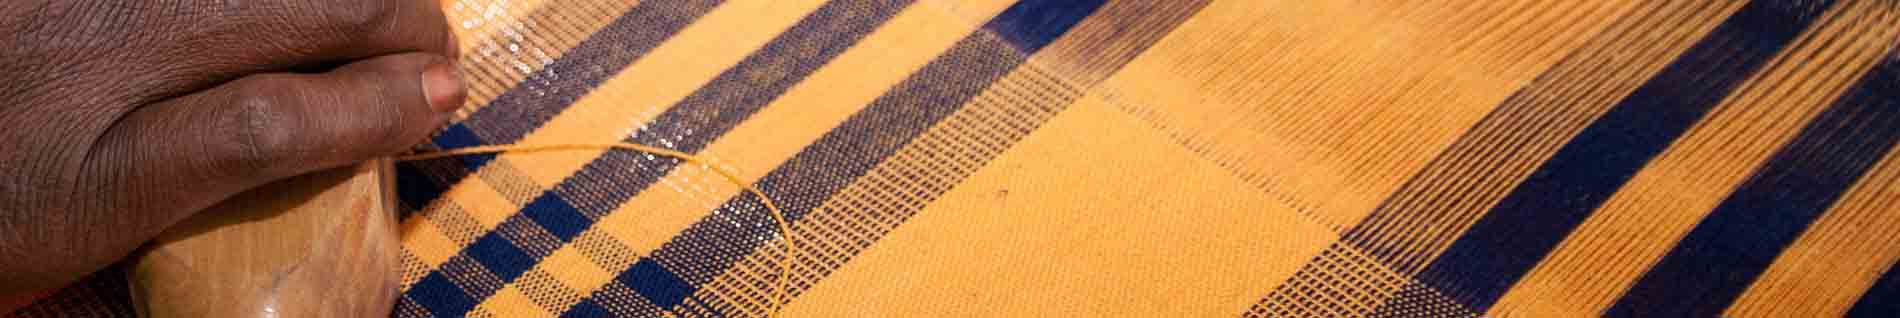 Hand-weaving tartan fabric in Burkina Faso. © Anne Mimault & ITC Ethical Fashion Initiative